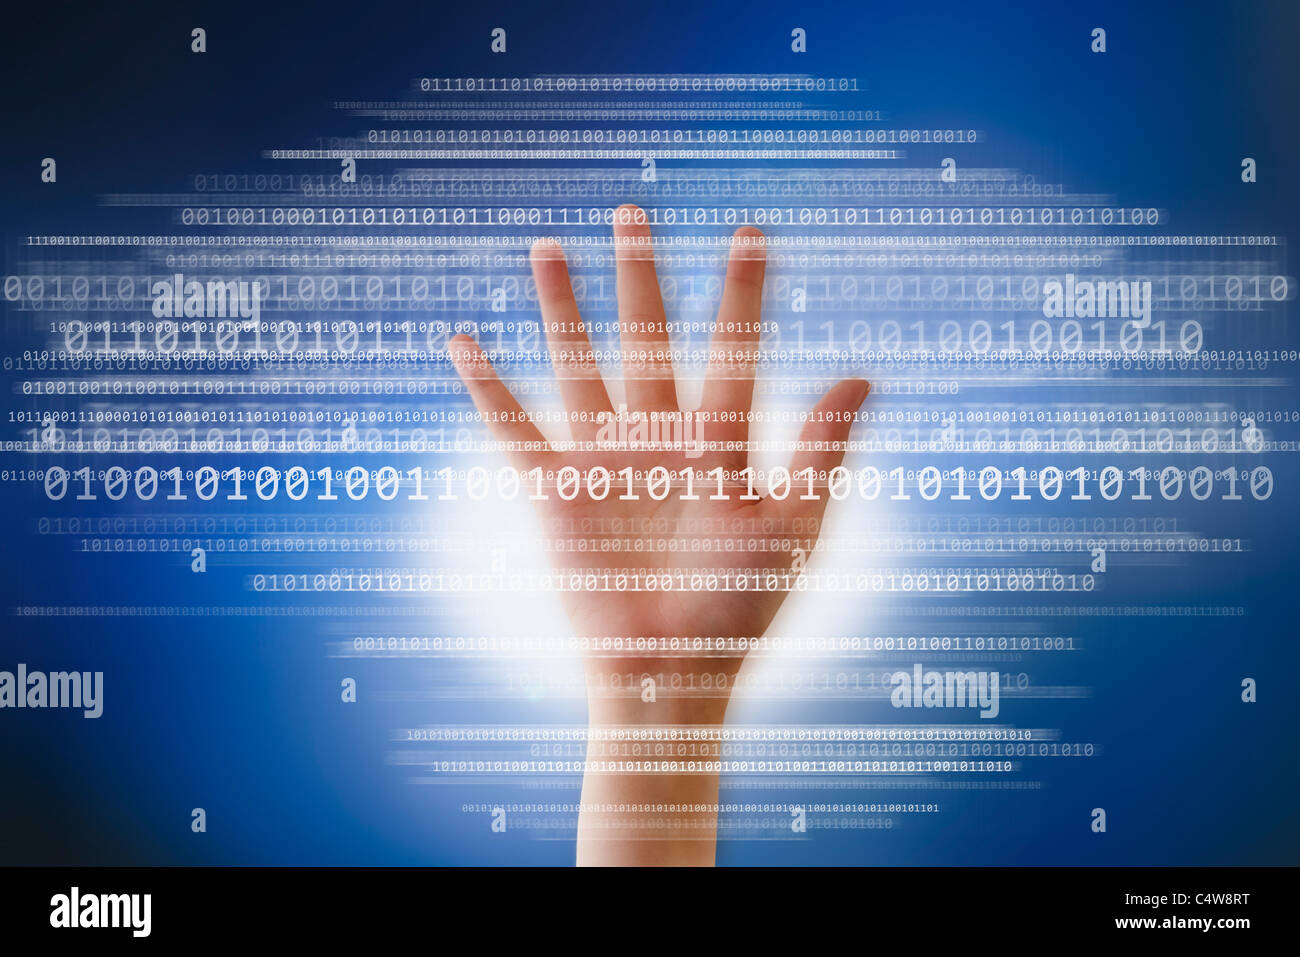 Digital image of hand and binary digits - Stock Image